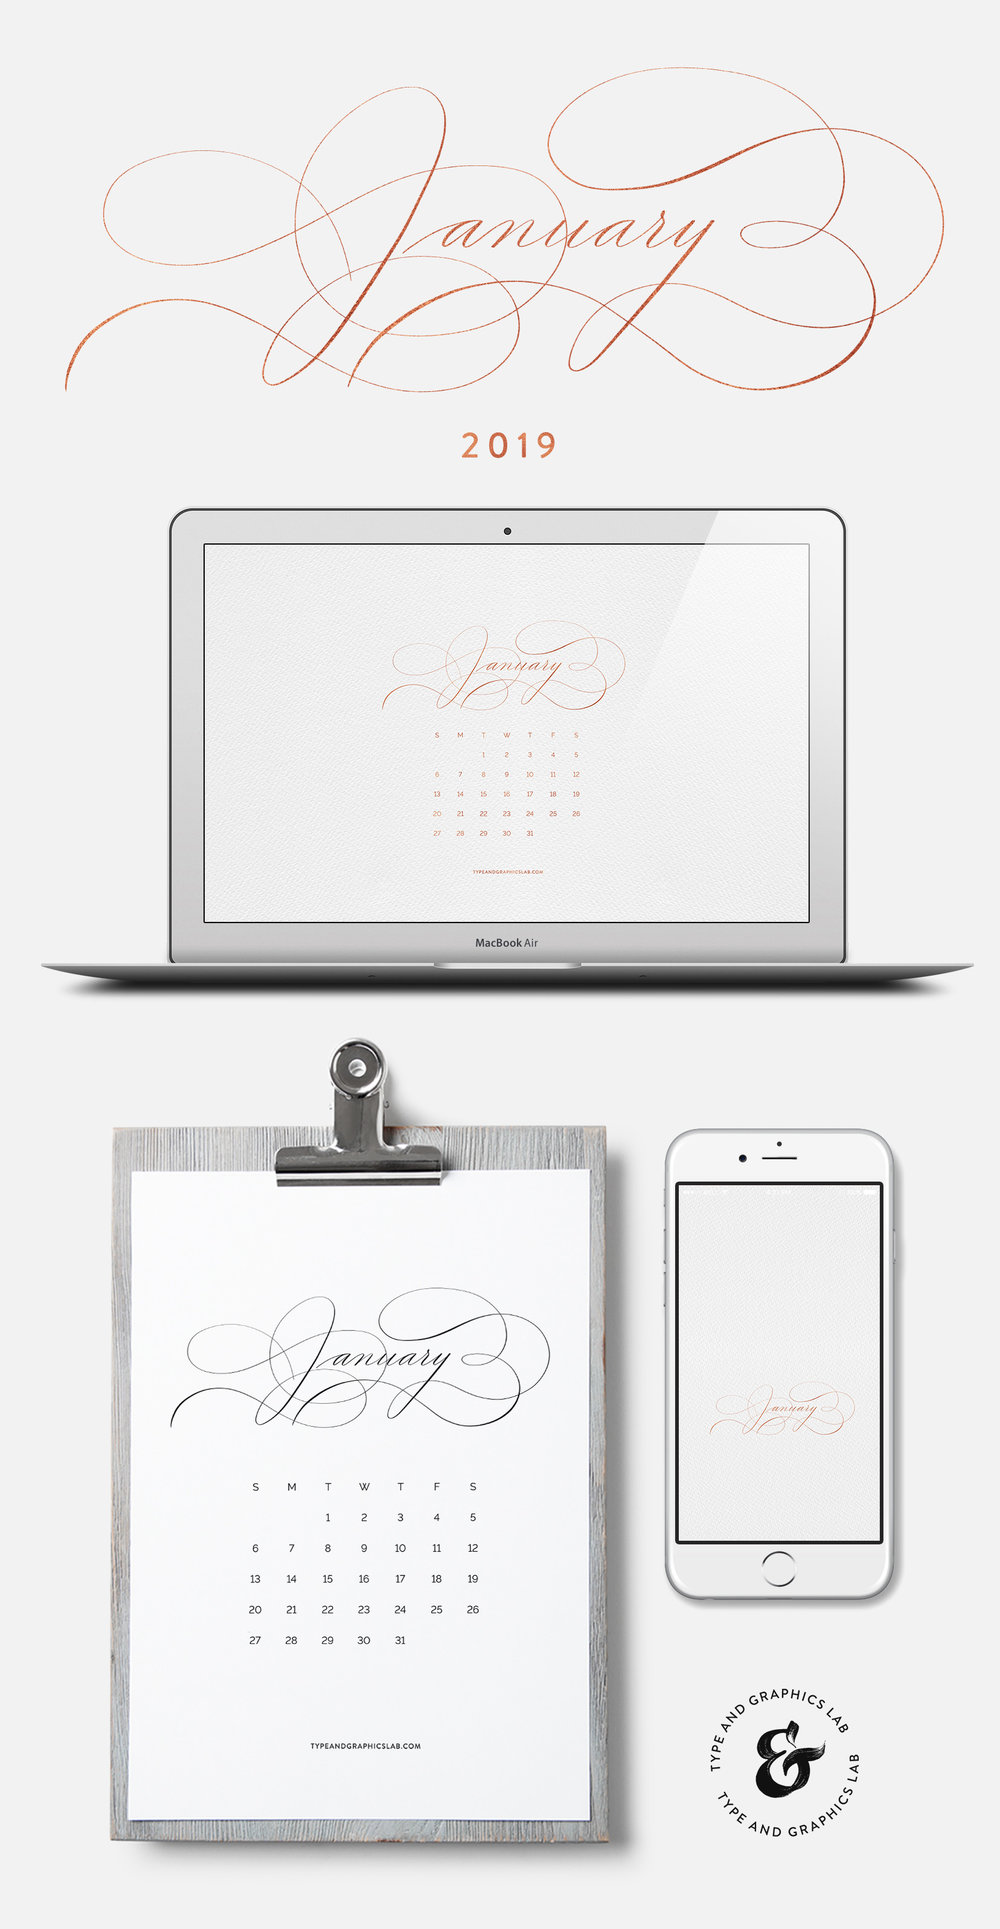 Download free desktop, mobile, and printable calendar for January 2019 | © typeandgraphicslab.com | For personal use only